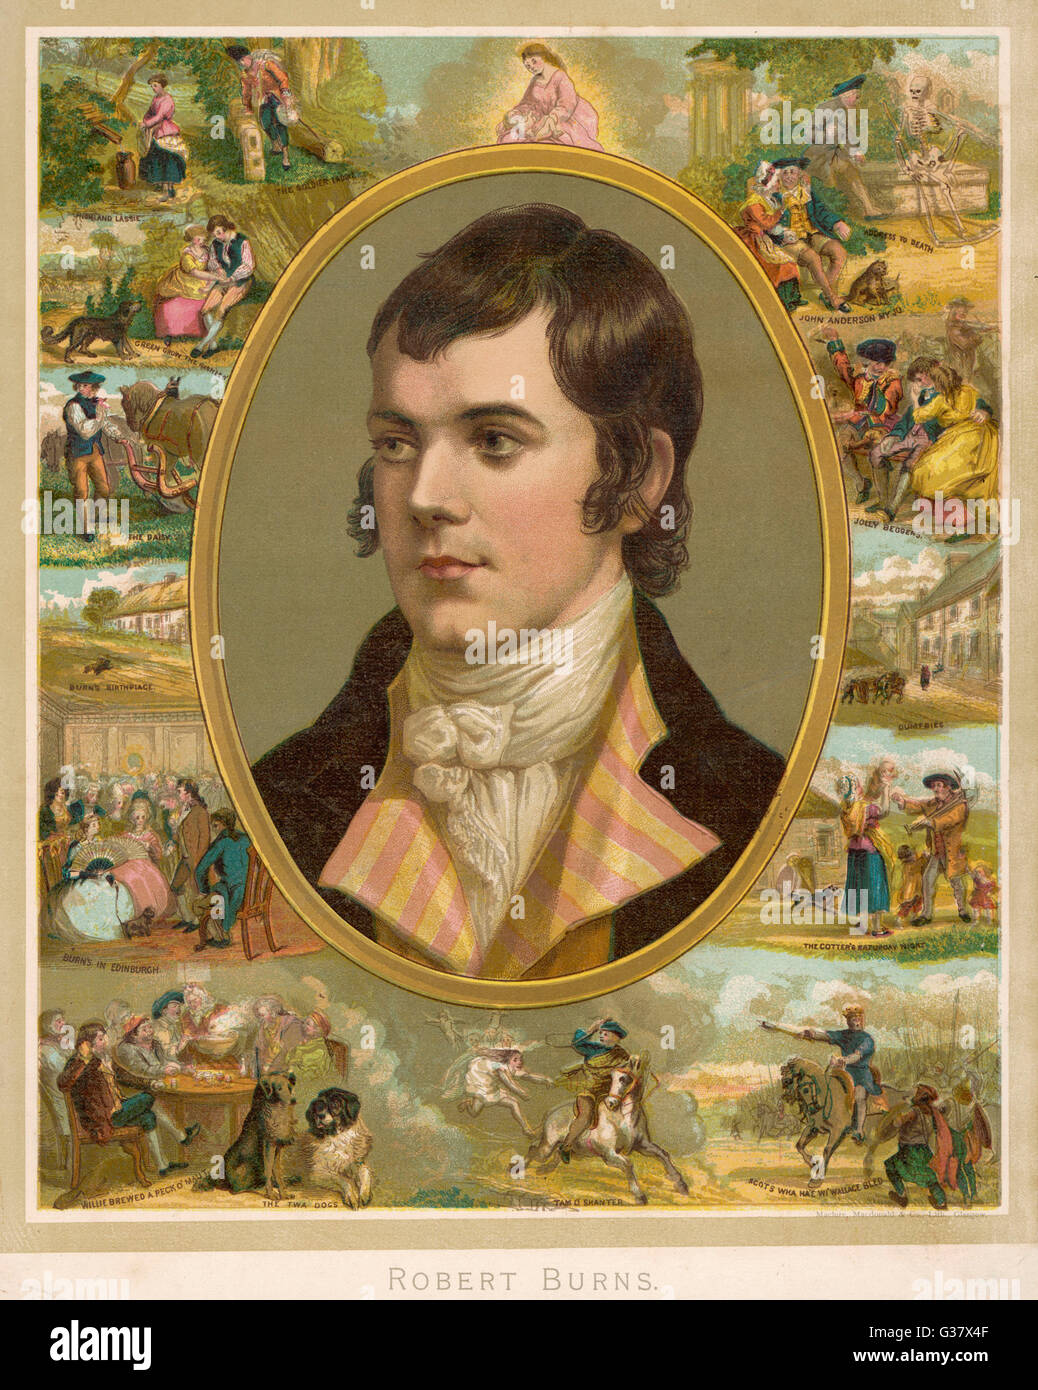 ROBERT BURNS  Scottish national poet  Portrait surrounded by his  creations     Date: 1759 - 1796 - Stock Image